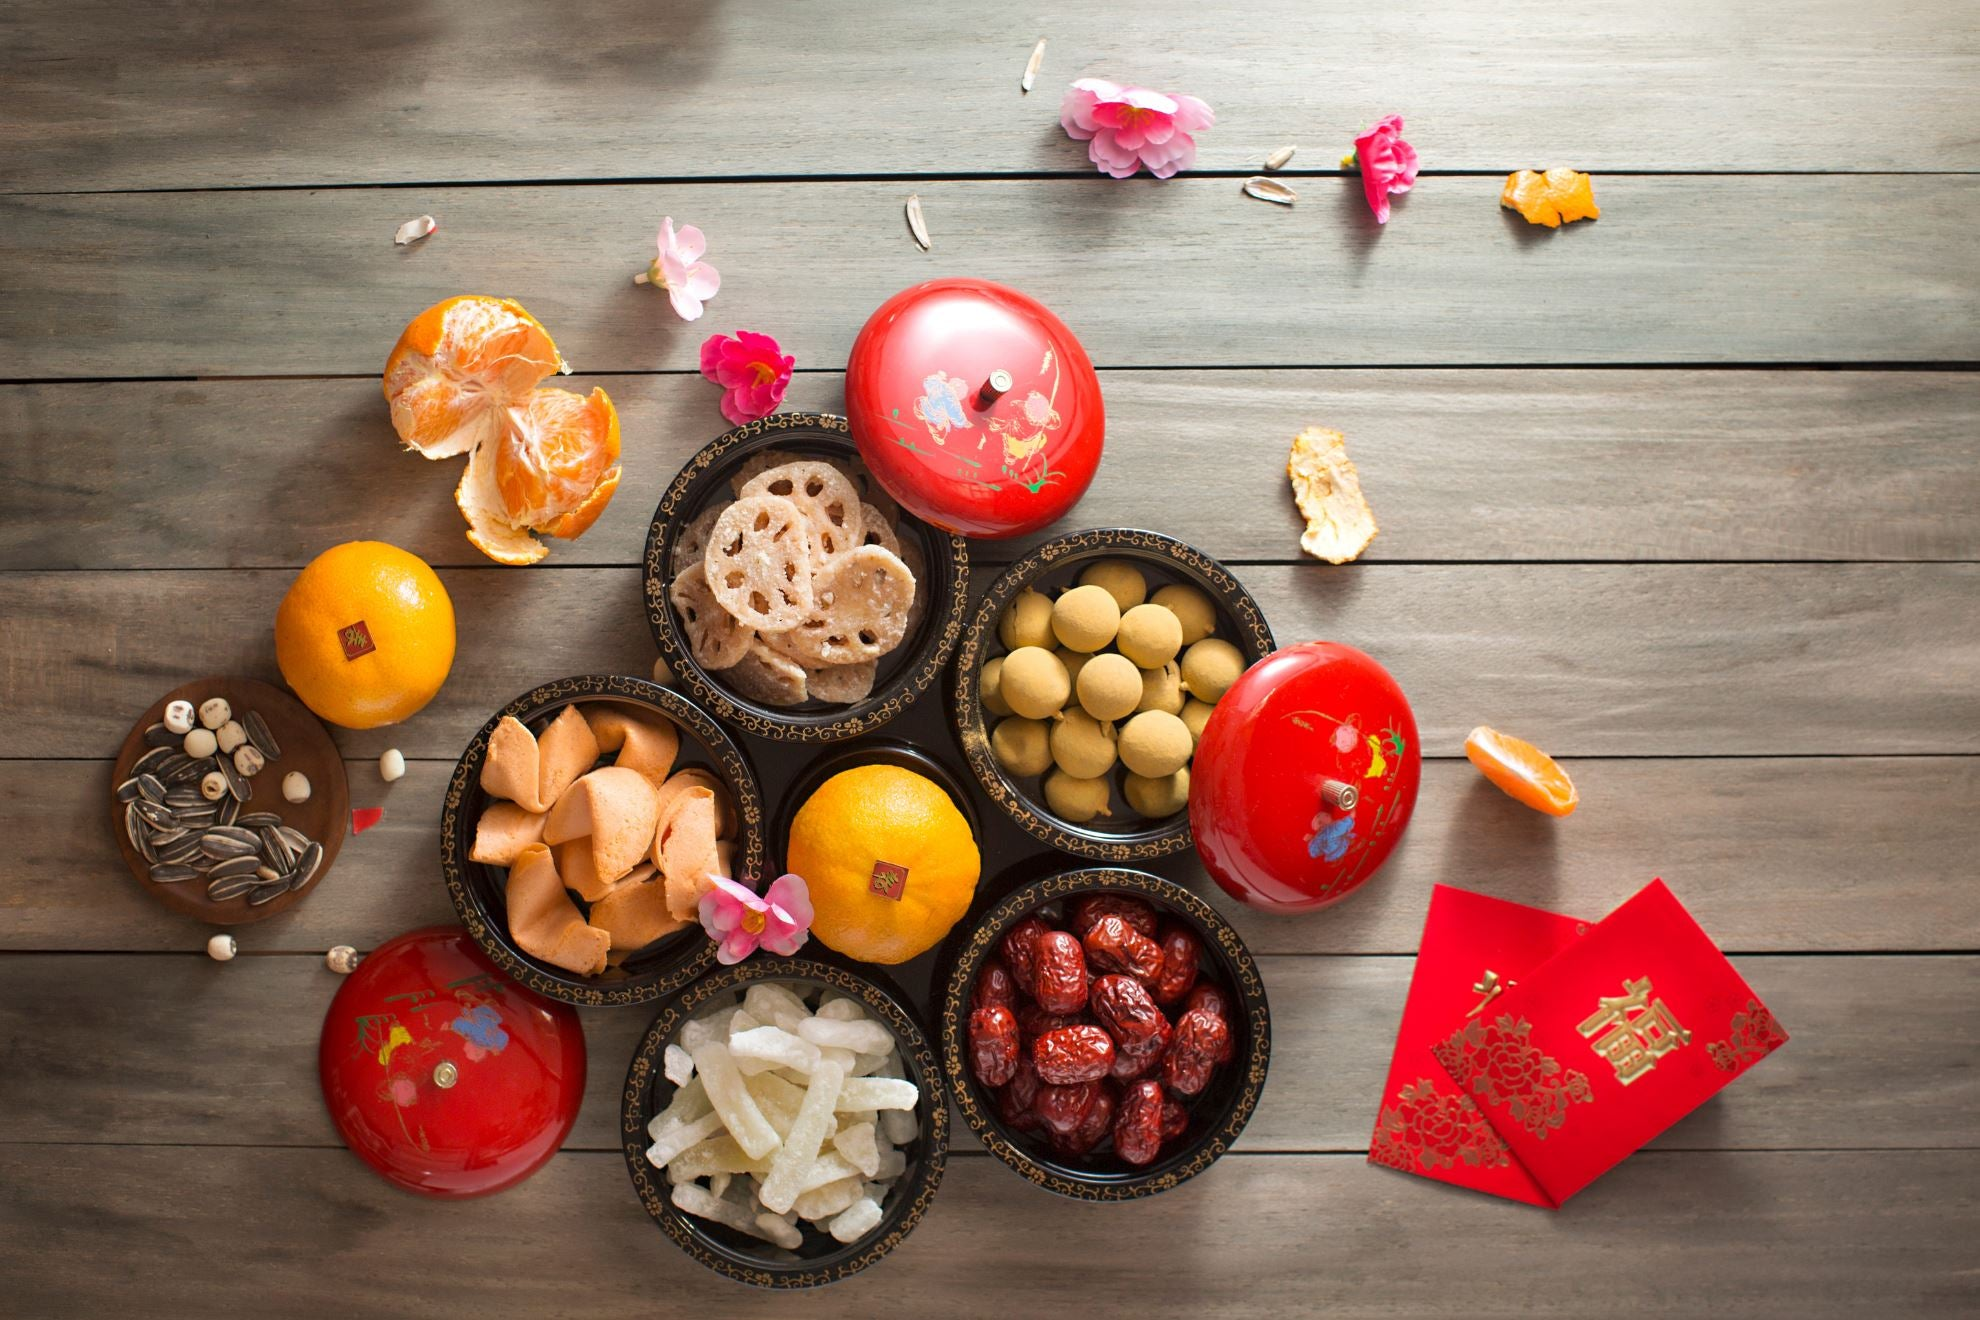 THE BEST WINE PAIRINGS FOR CNY - LET US START THE YEAR OF THE OX WITH THE RIGHT FOOD AND WINE!